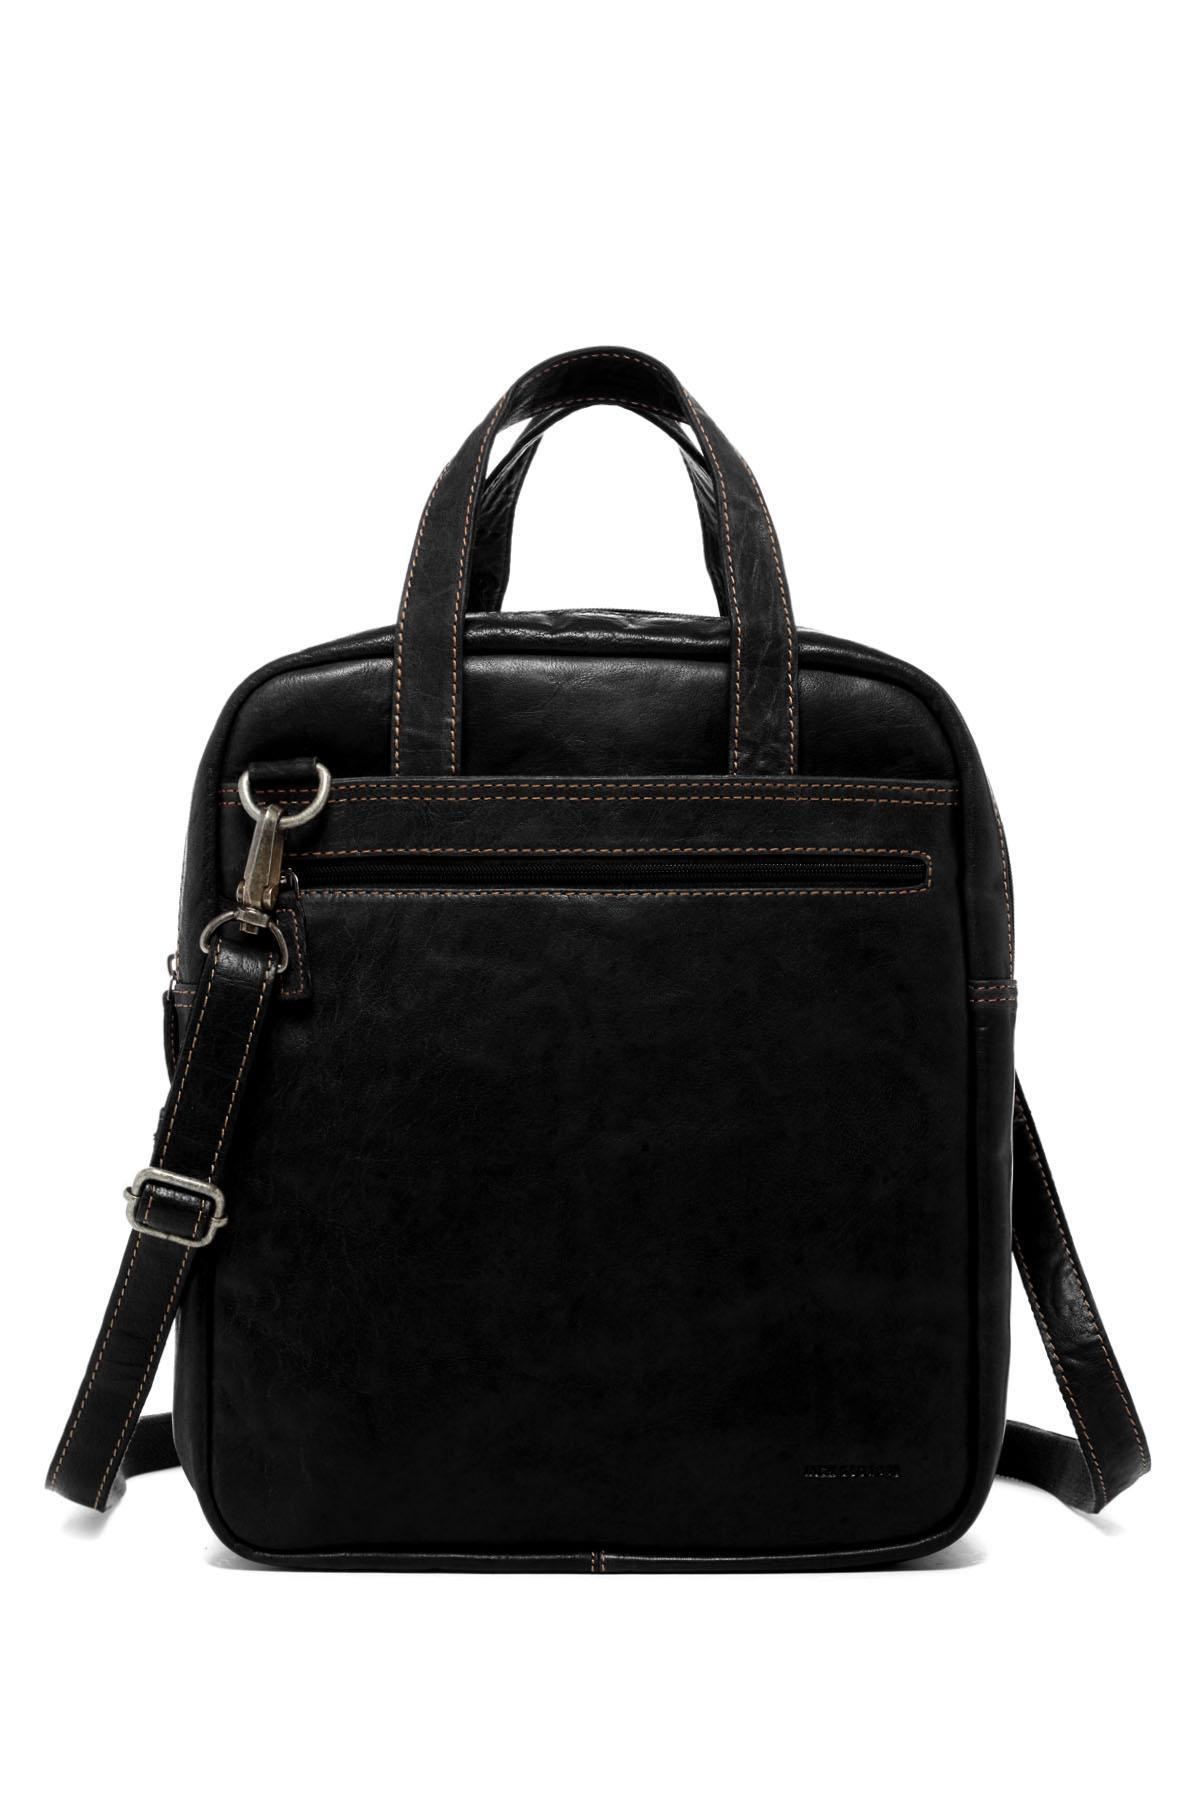 Jack Georges Voyager Leather Convertible Man Bag To Duffle Bag